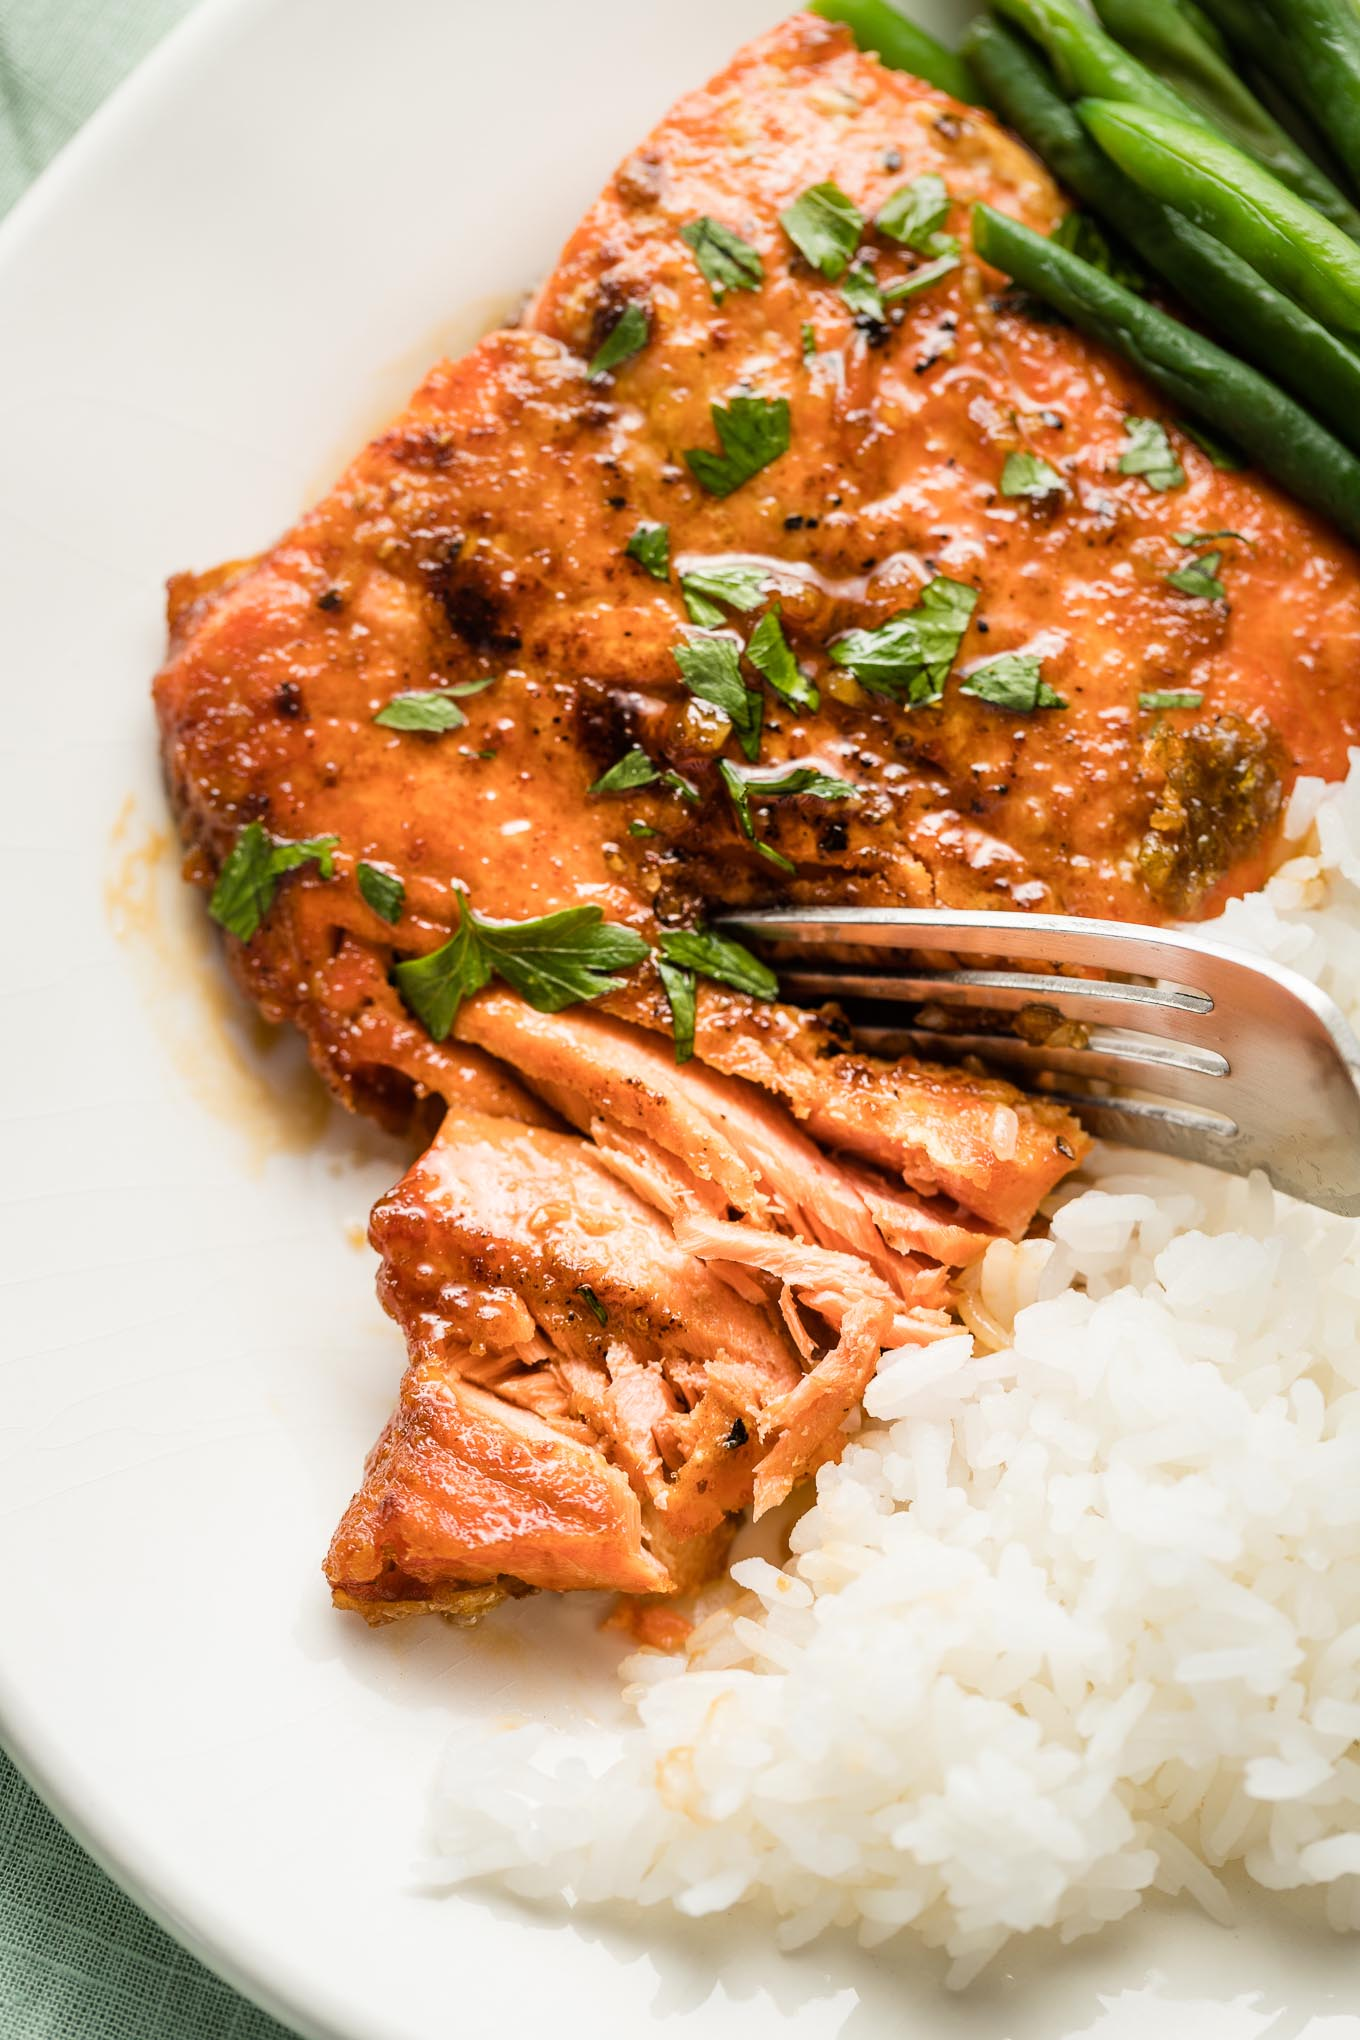 Close-up of flaked salmon.